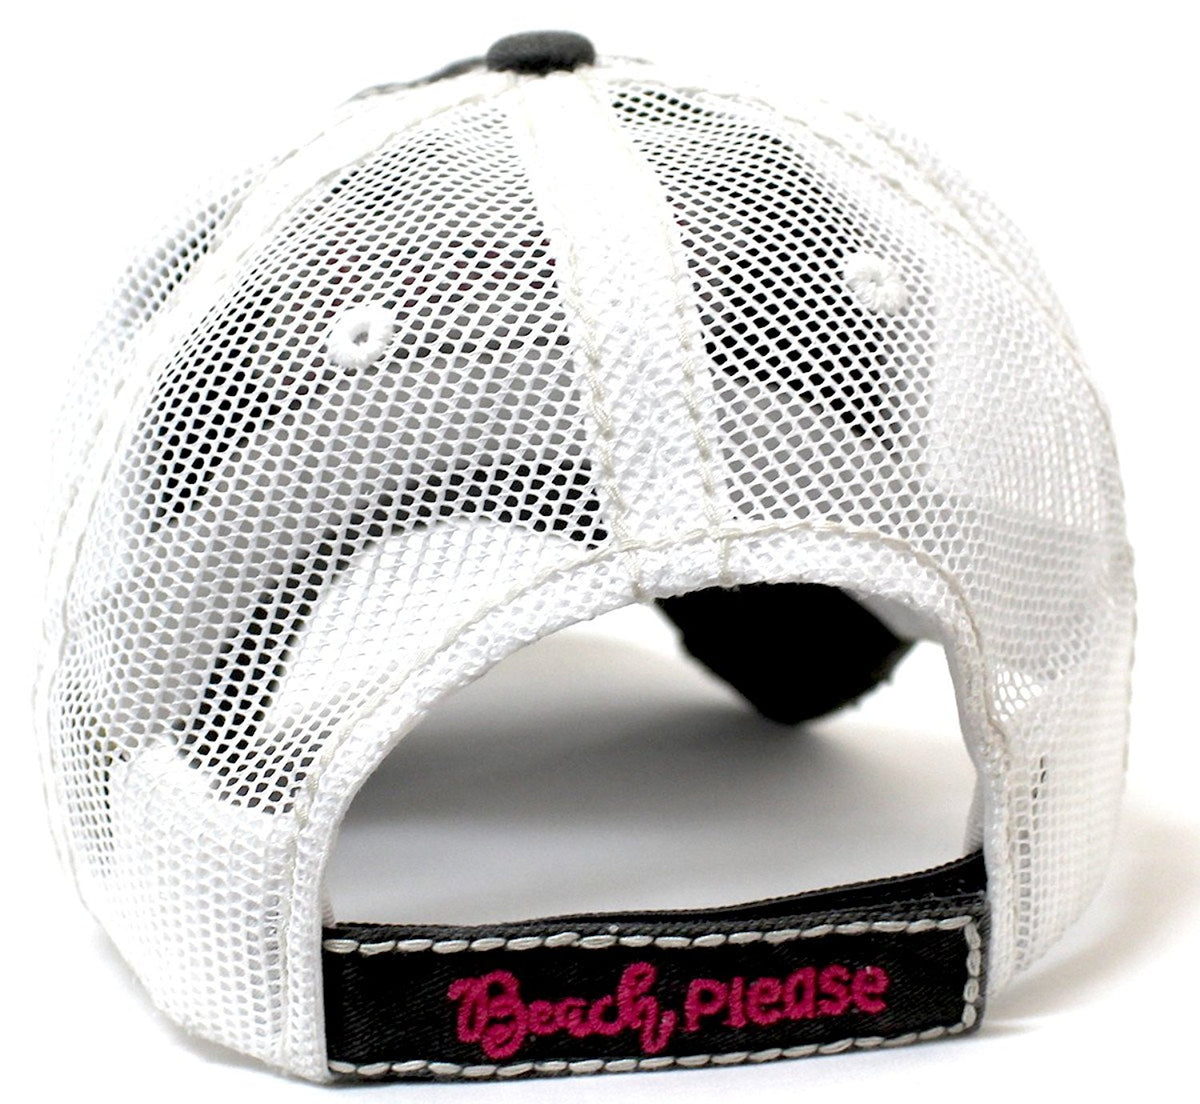 CAPS 'N VINTAGE Women's Beach Please Patch Embroidery Mesh Back Baseball Hat-Blk - Caps 'N Vintage